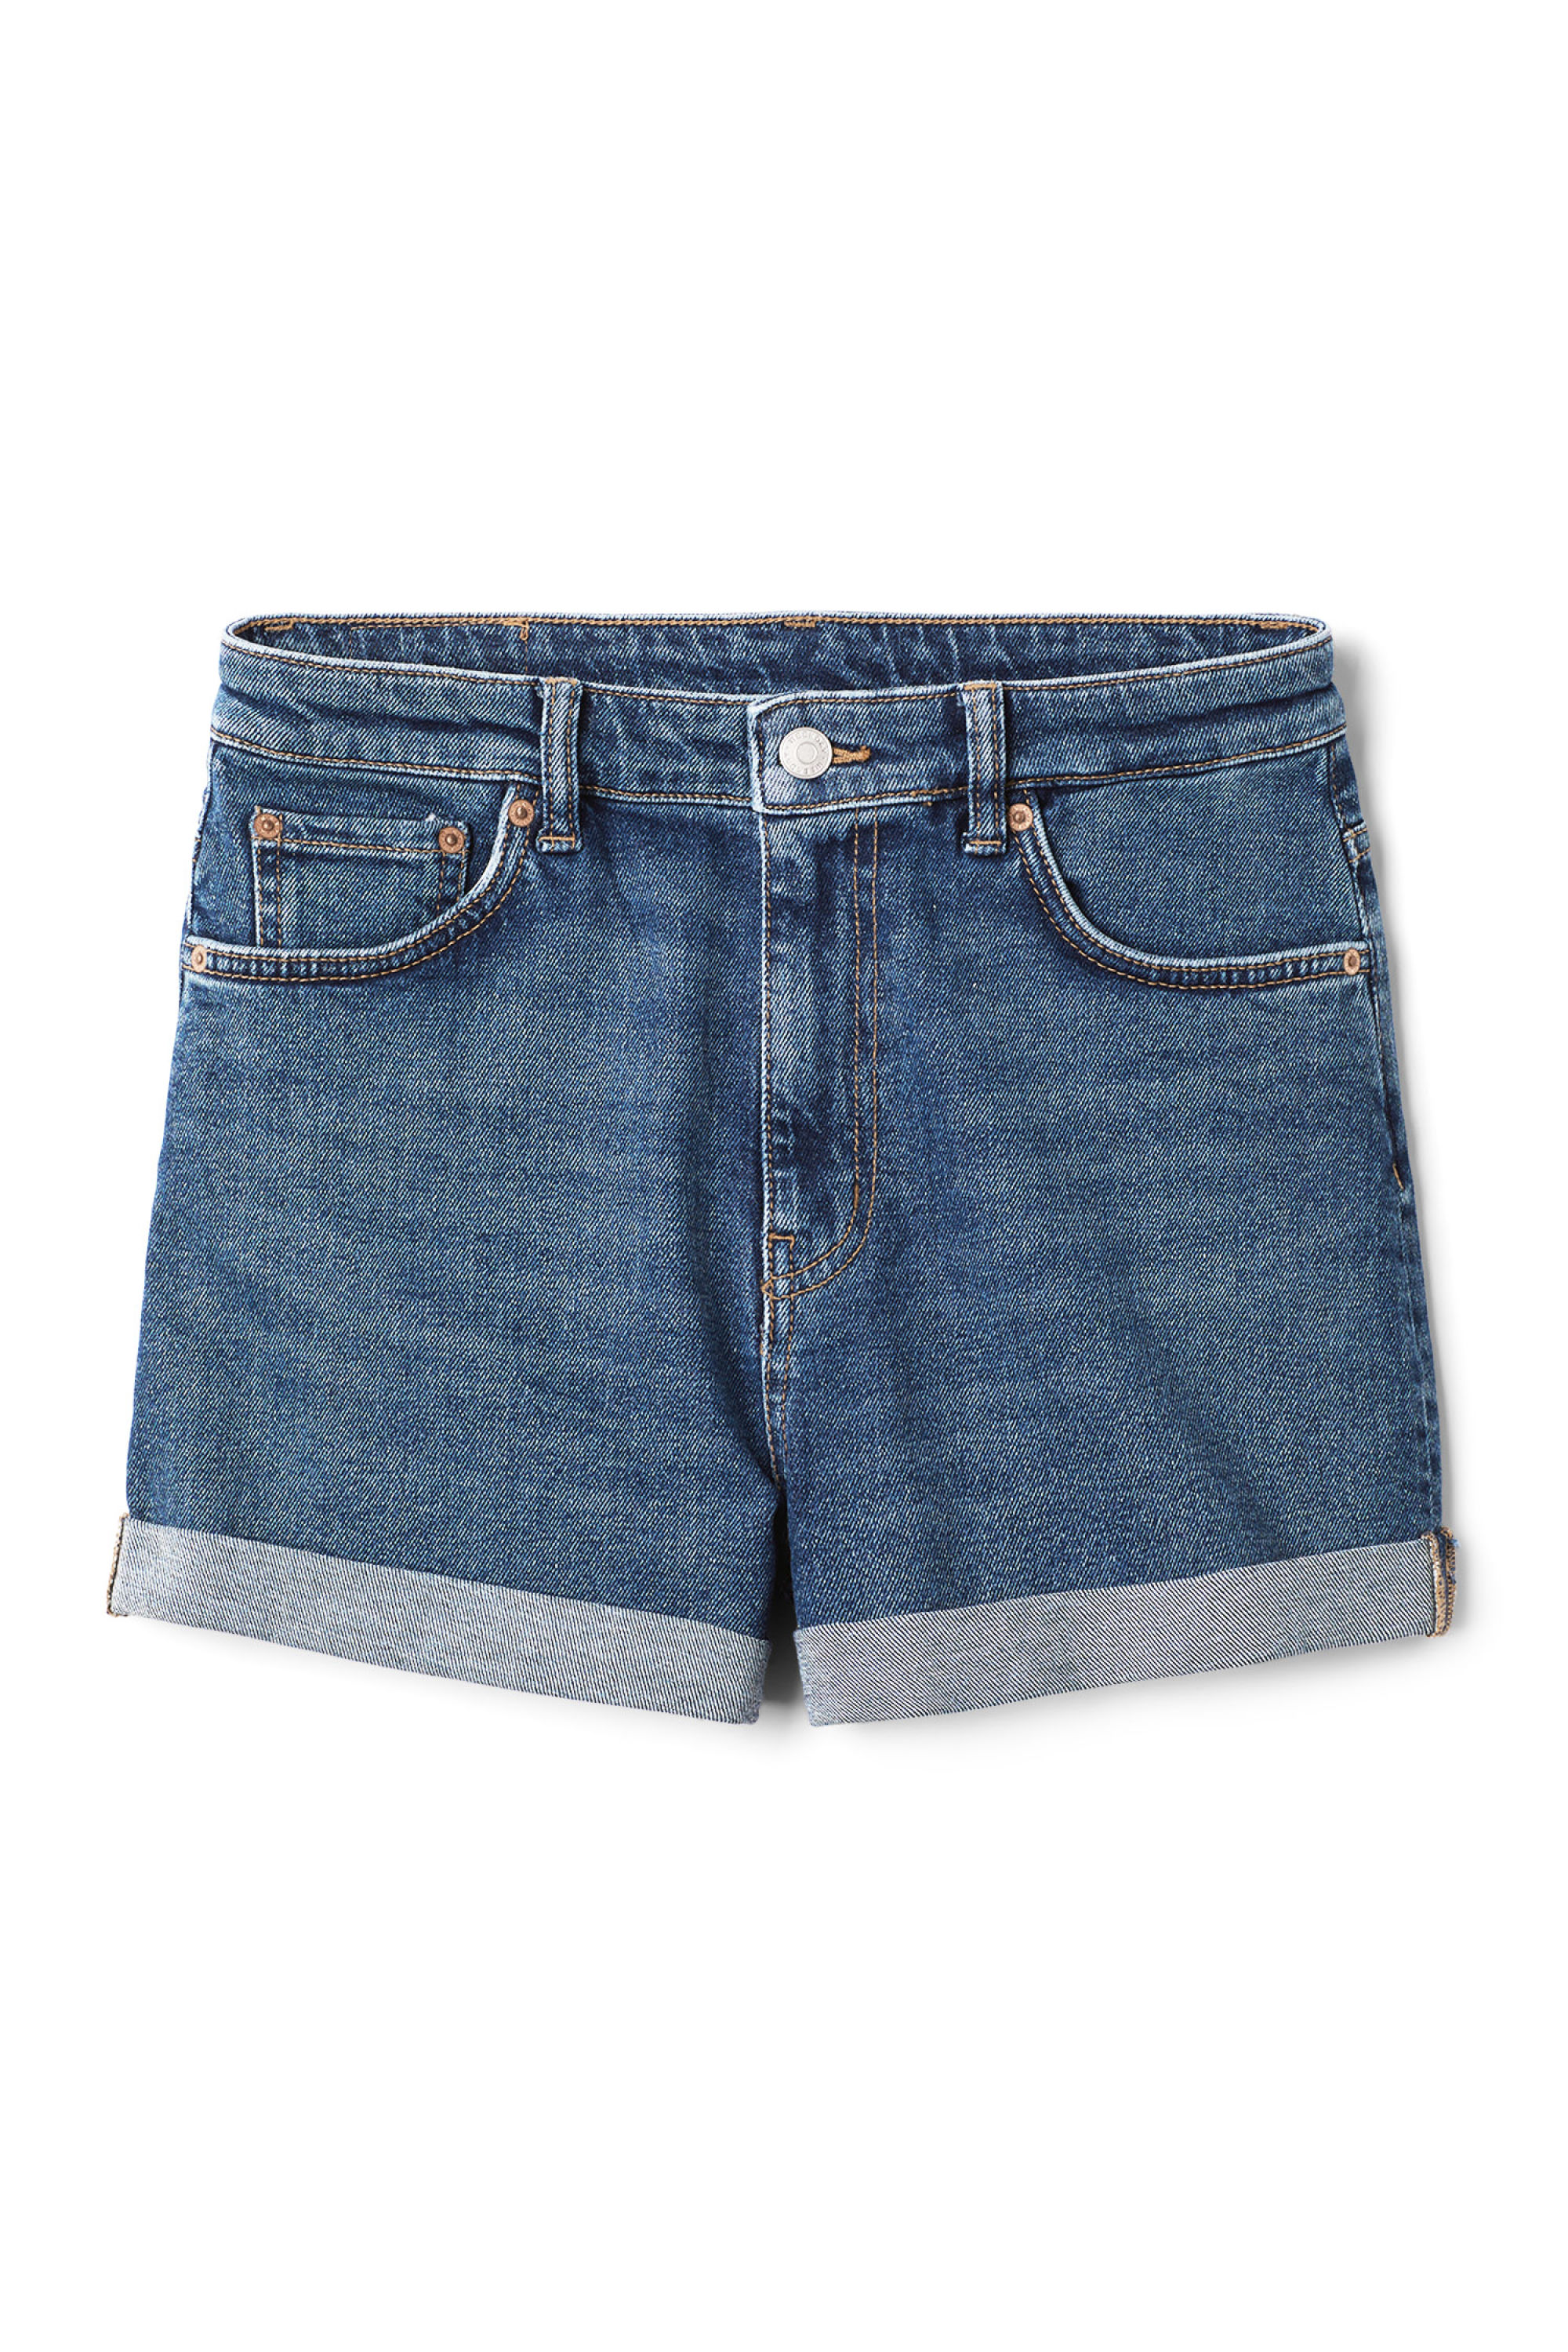 Weekday Newday Peralta Shorts